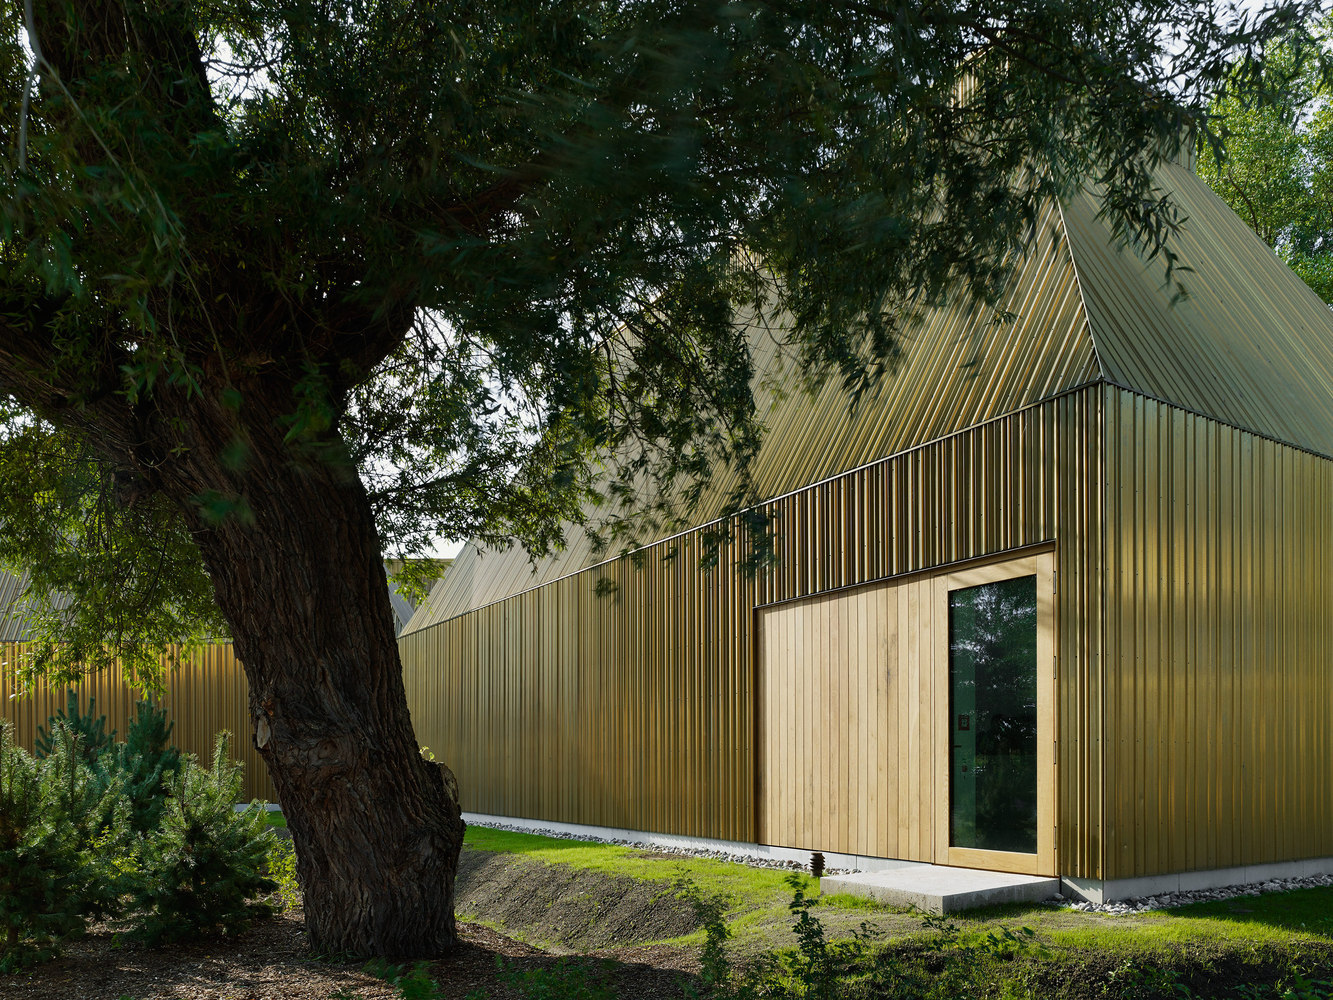 Gallery of Copper Projects: Architecture's Original Bling - 11